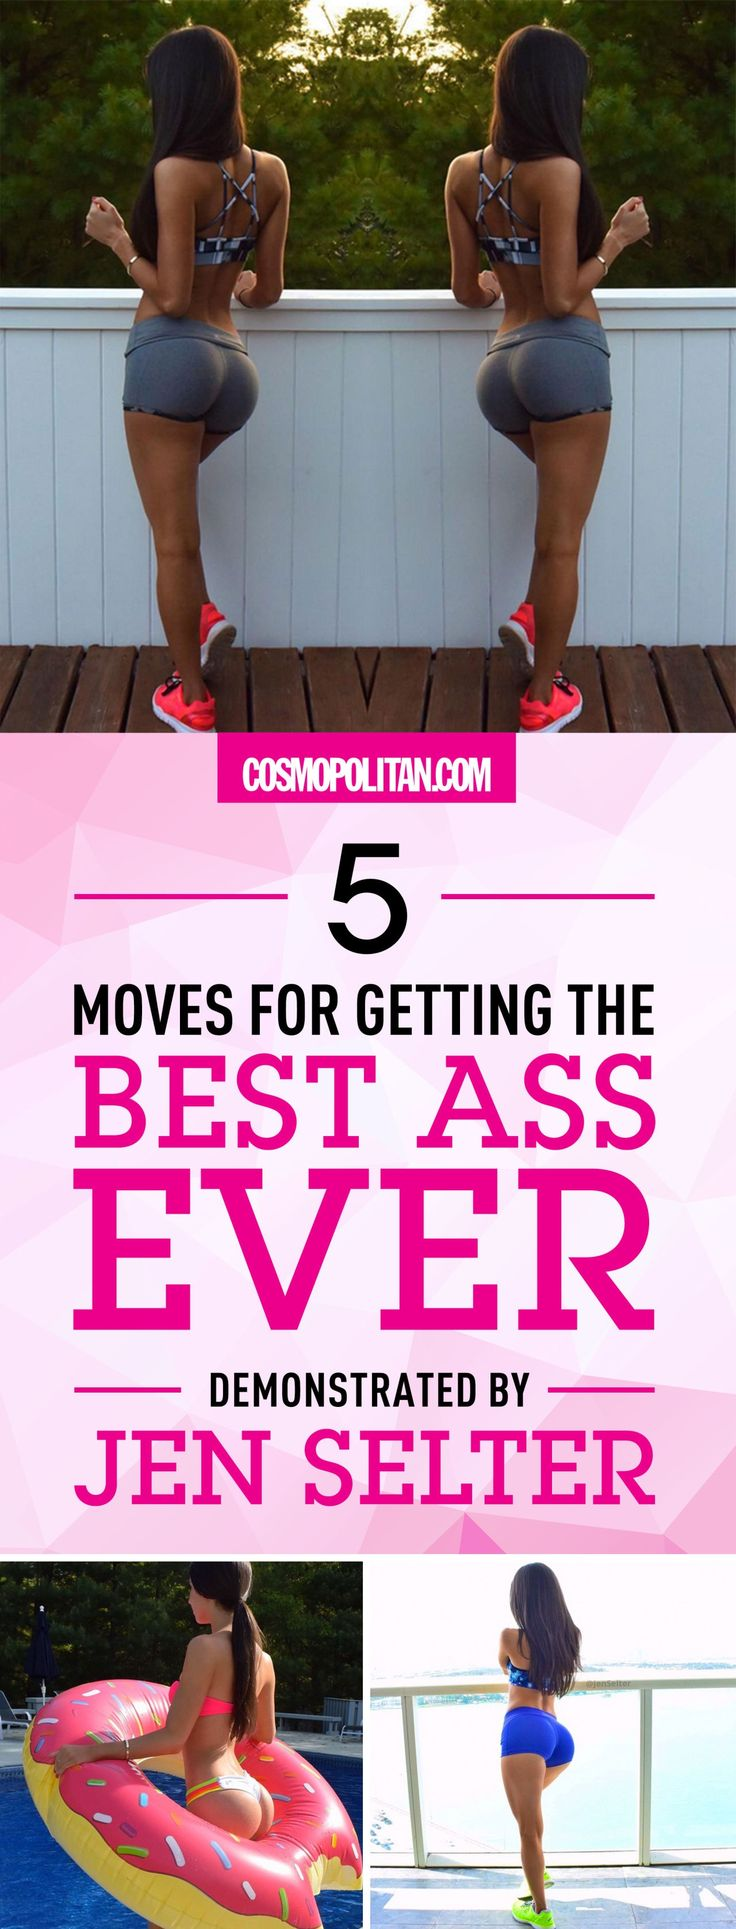 Use these 5 moves \u2014 donkey kicks, doggy hydrant, chair kicks, squat pulse, and squat kick \u2014 to get an ass like the Instagram famous, Jen Selter. Click through for the expert tips and instructions from Jen Setler herself. #totalbodytransformation